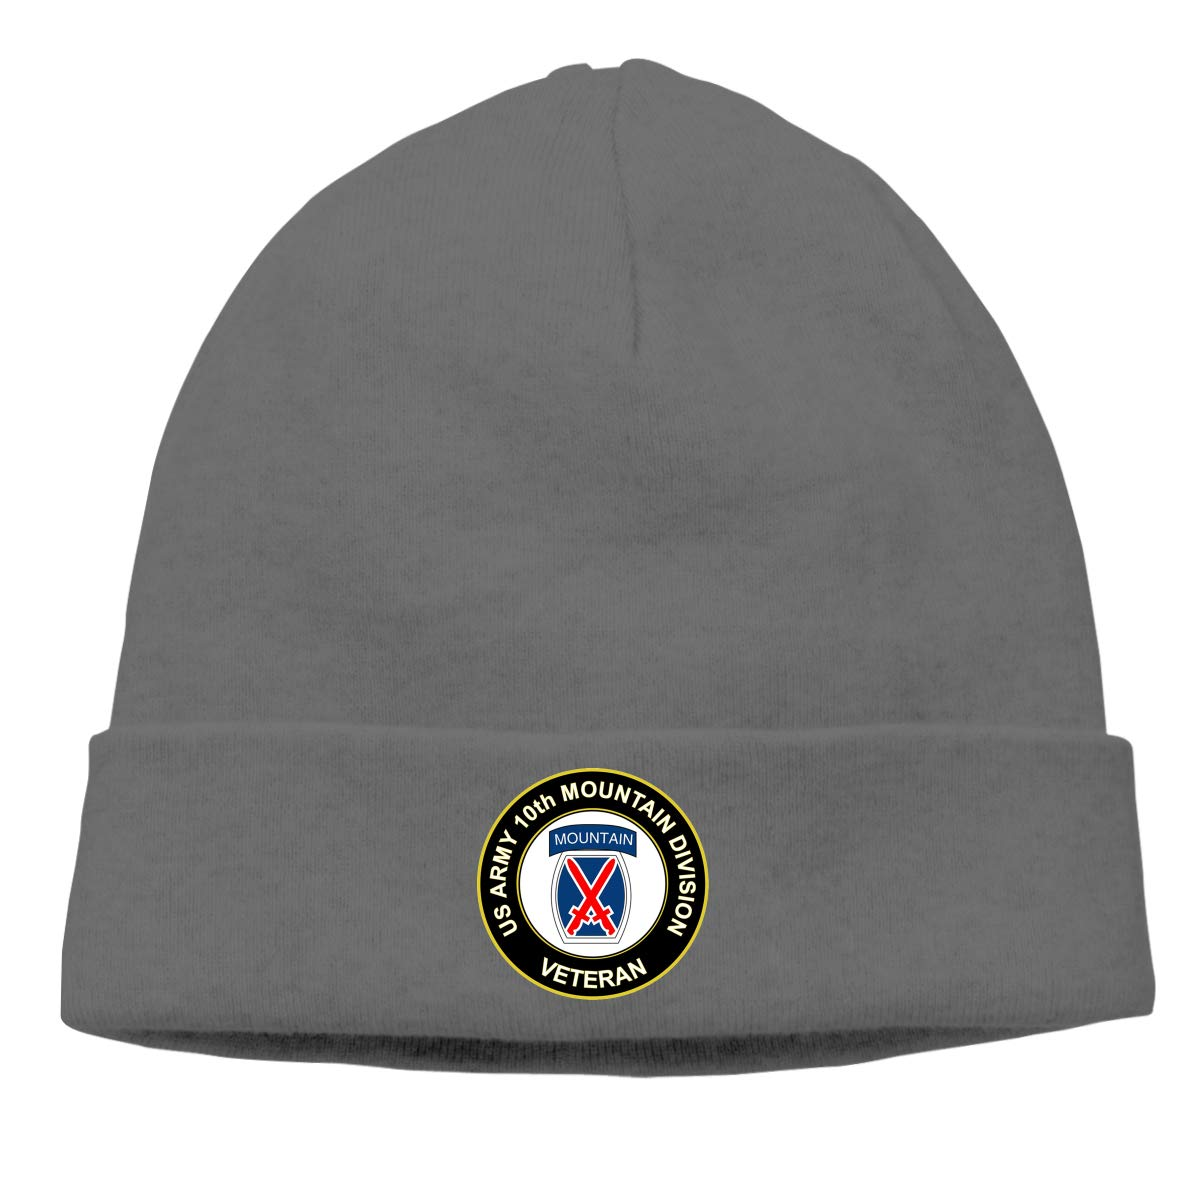 Army Veteran 10th Mountain Infantry Division Beanie Hat Warm Hats Skull Cap Knitted Hat U.S